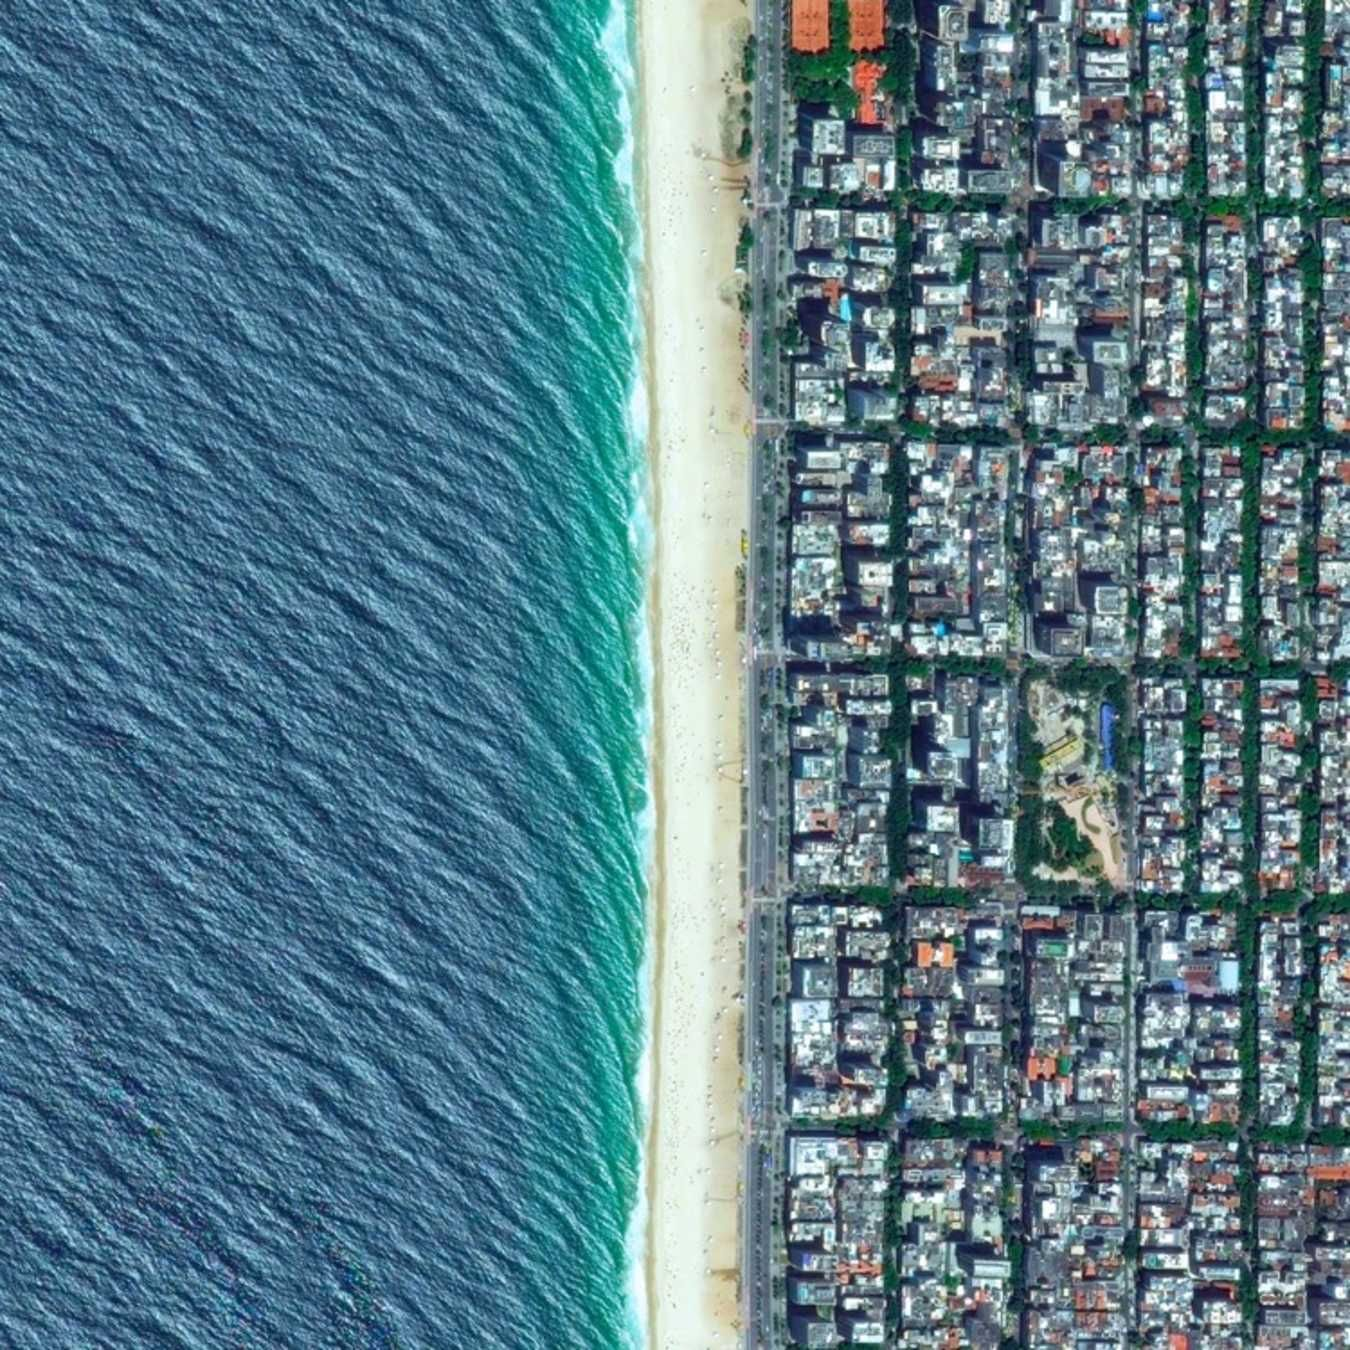 This Great Instagram Shares A Different Mind Blowing Satellite Image Each Day. The world as art.